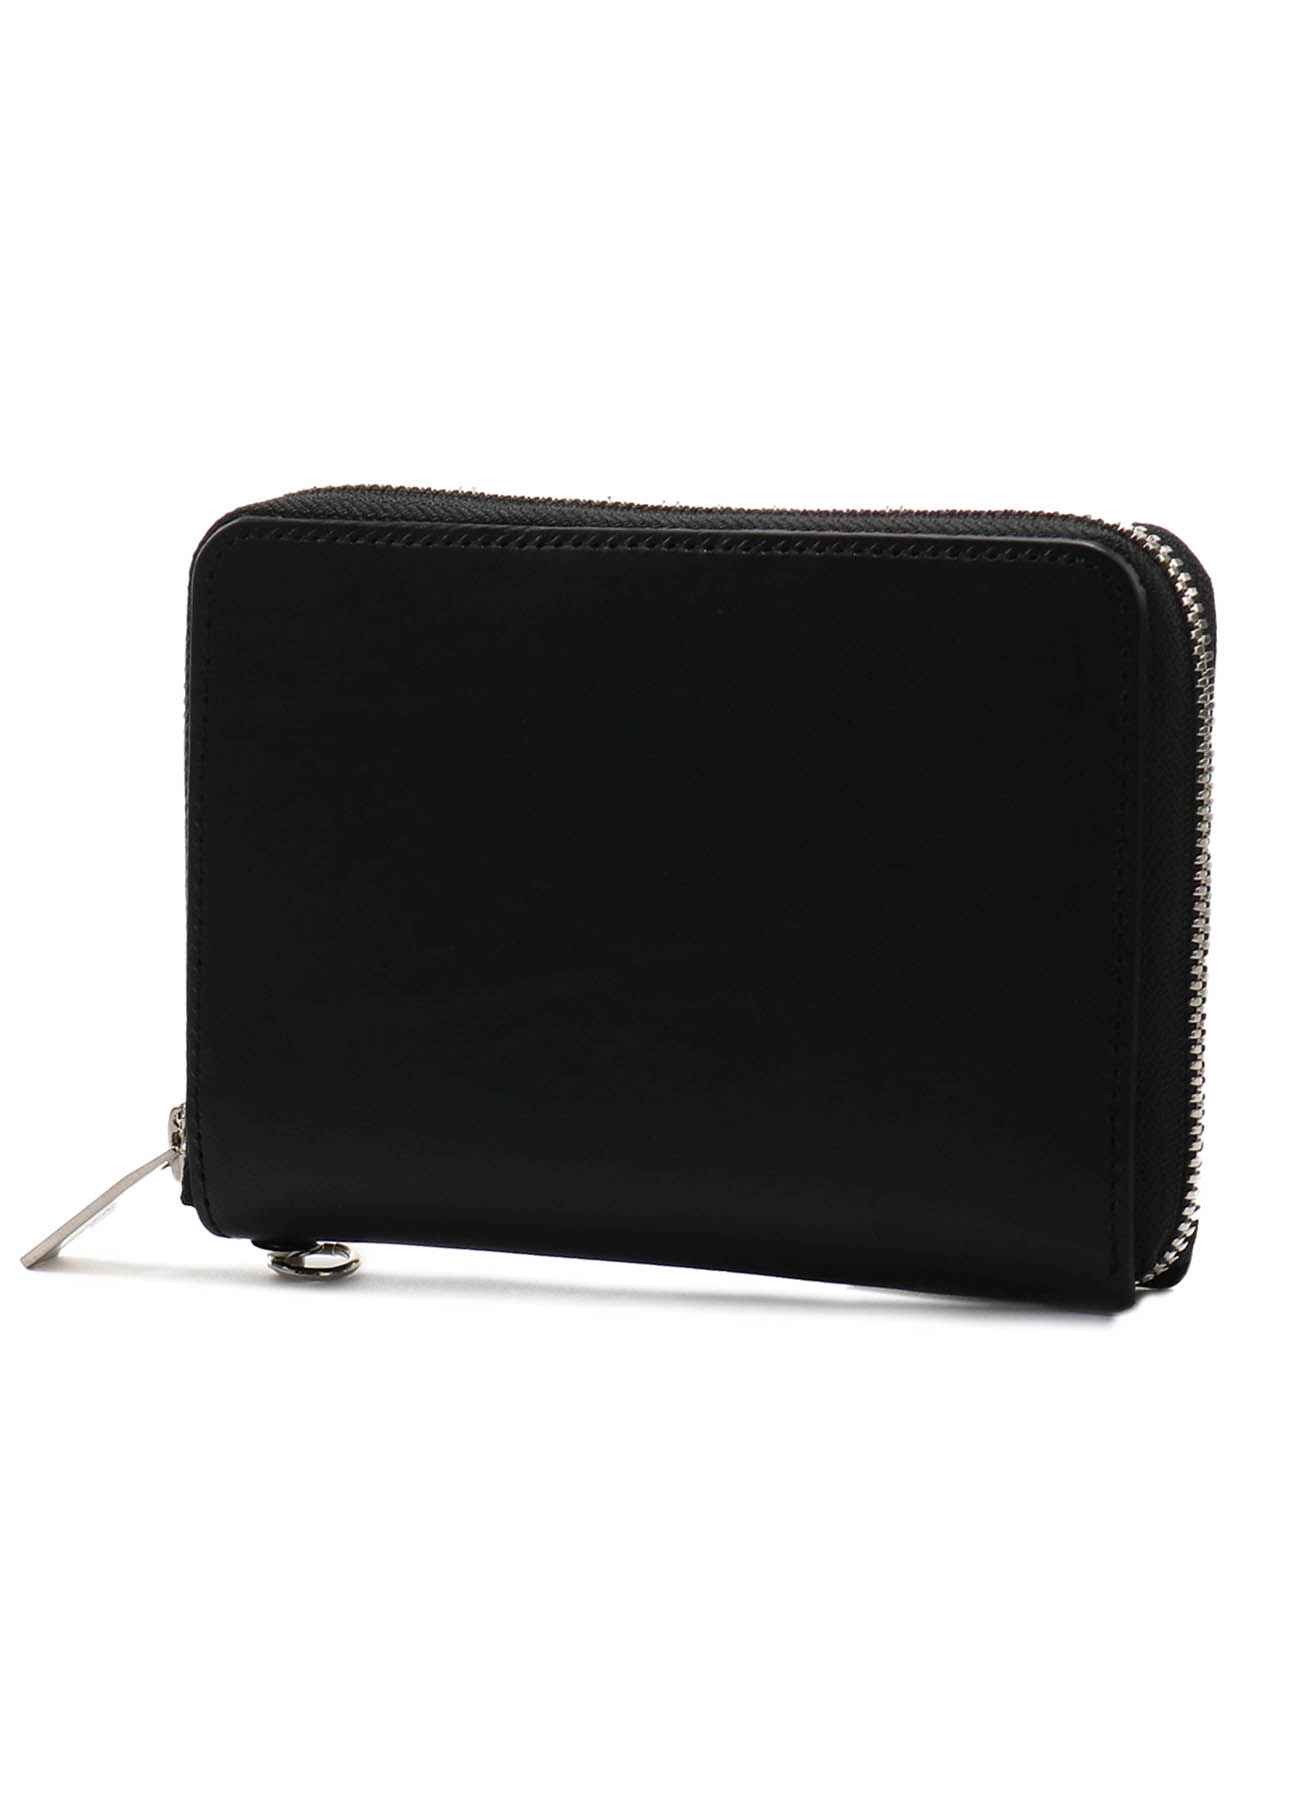 THICK NATURAL LEATHER FASTENER WALLET S